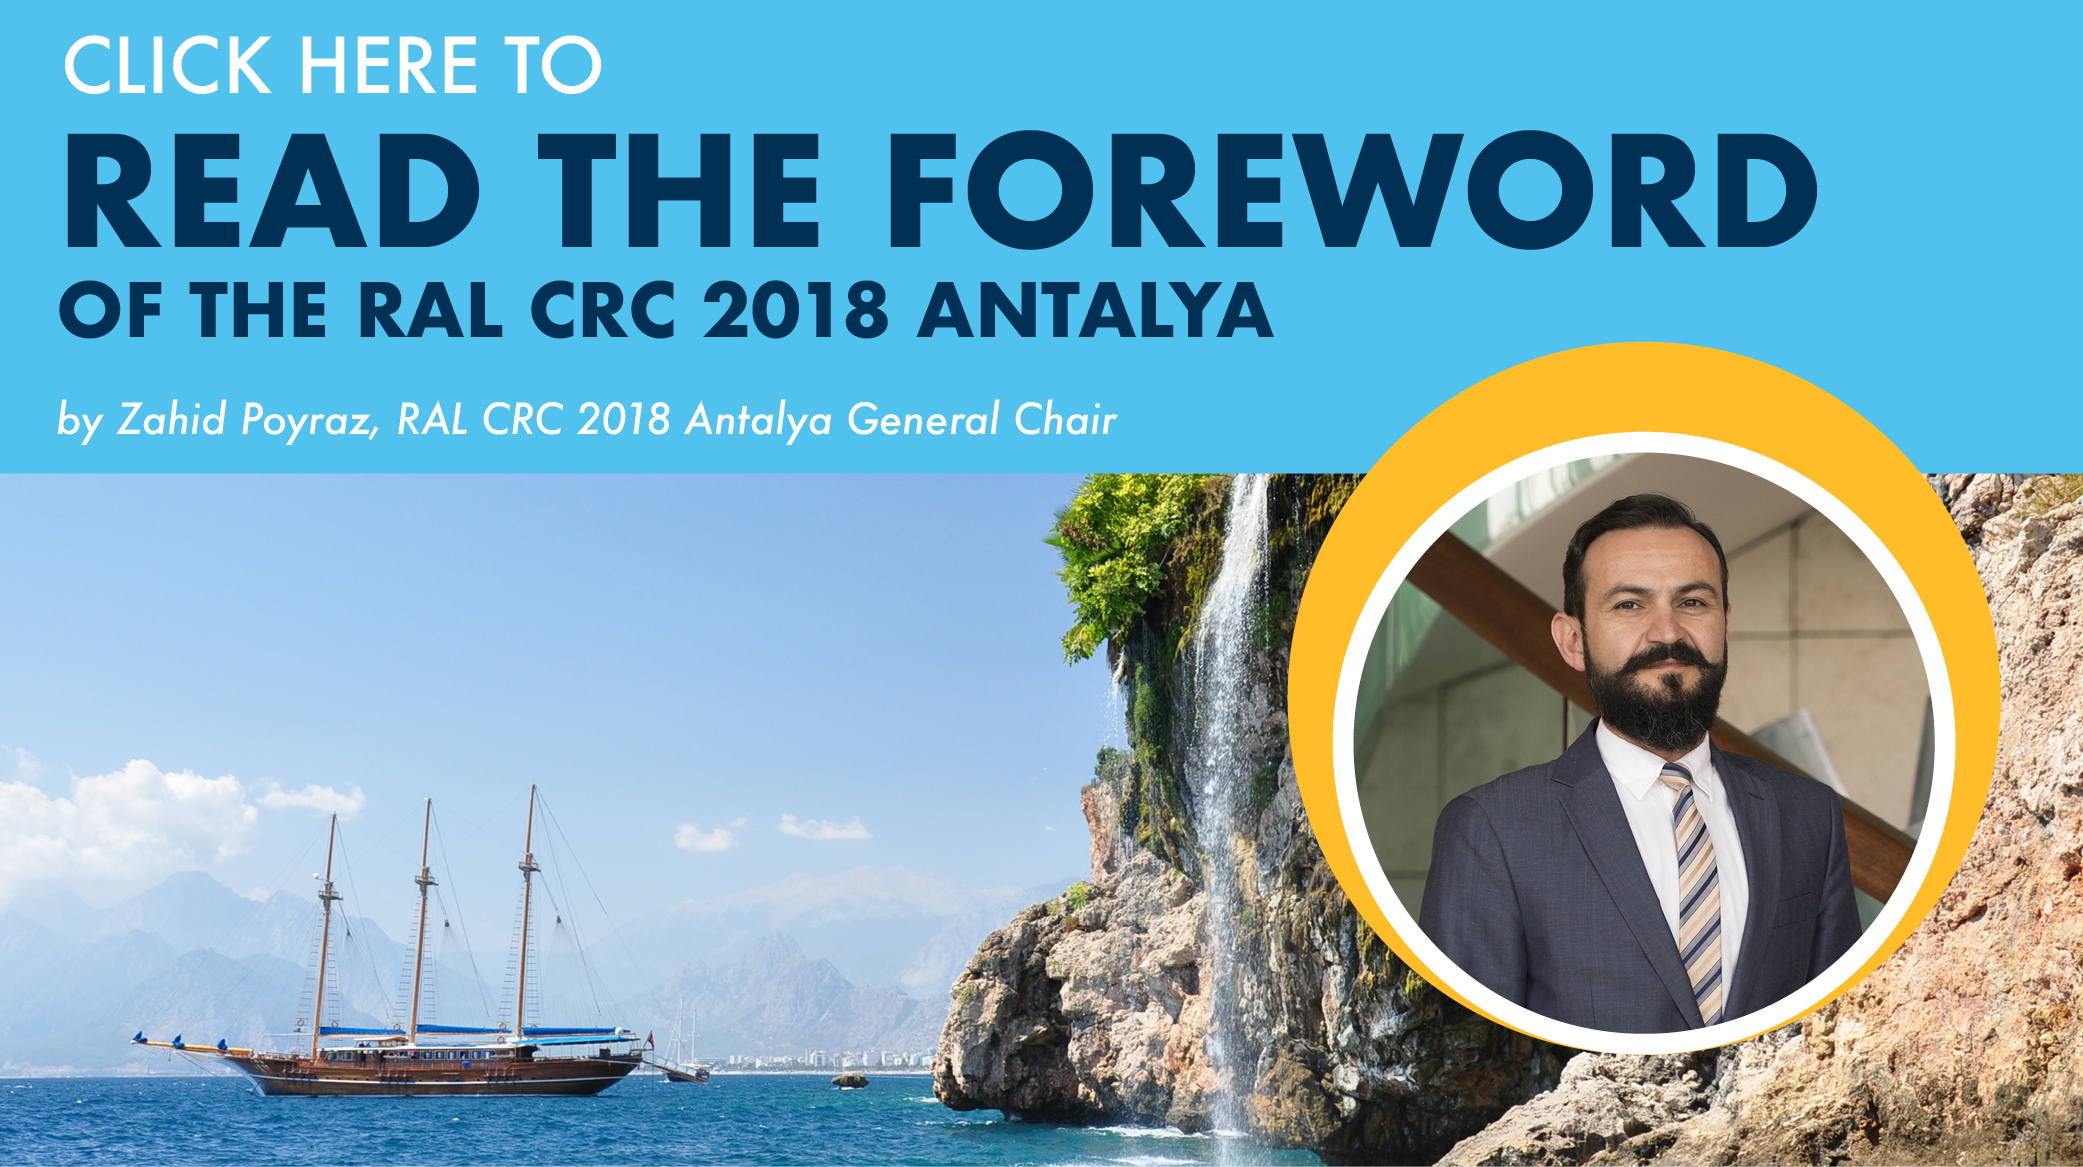 general-chairs-message-ral-crc-2018-antalya